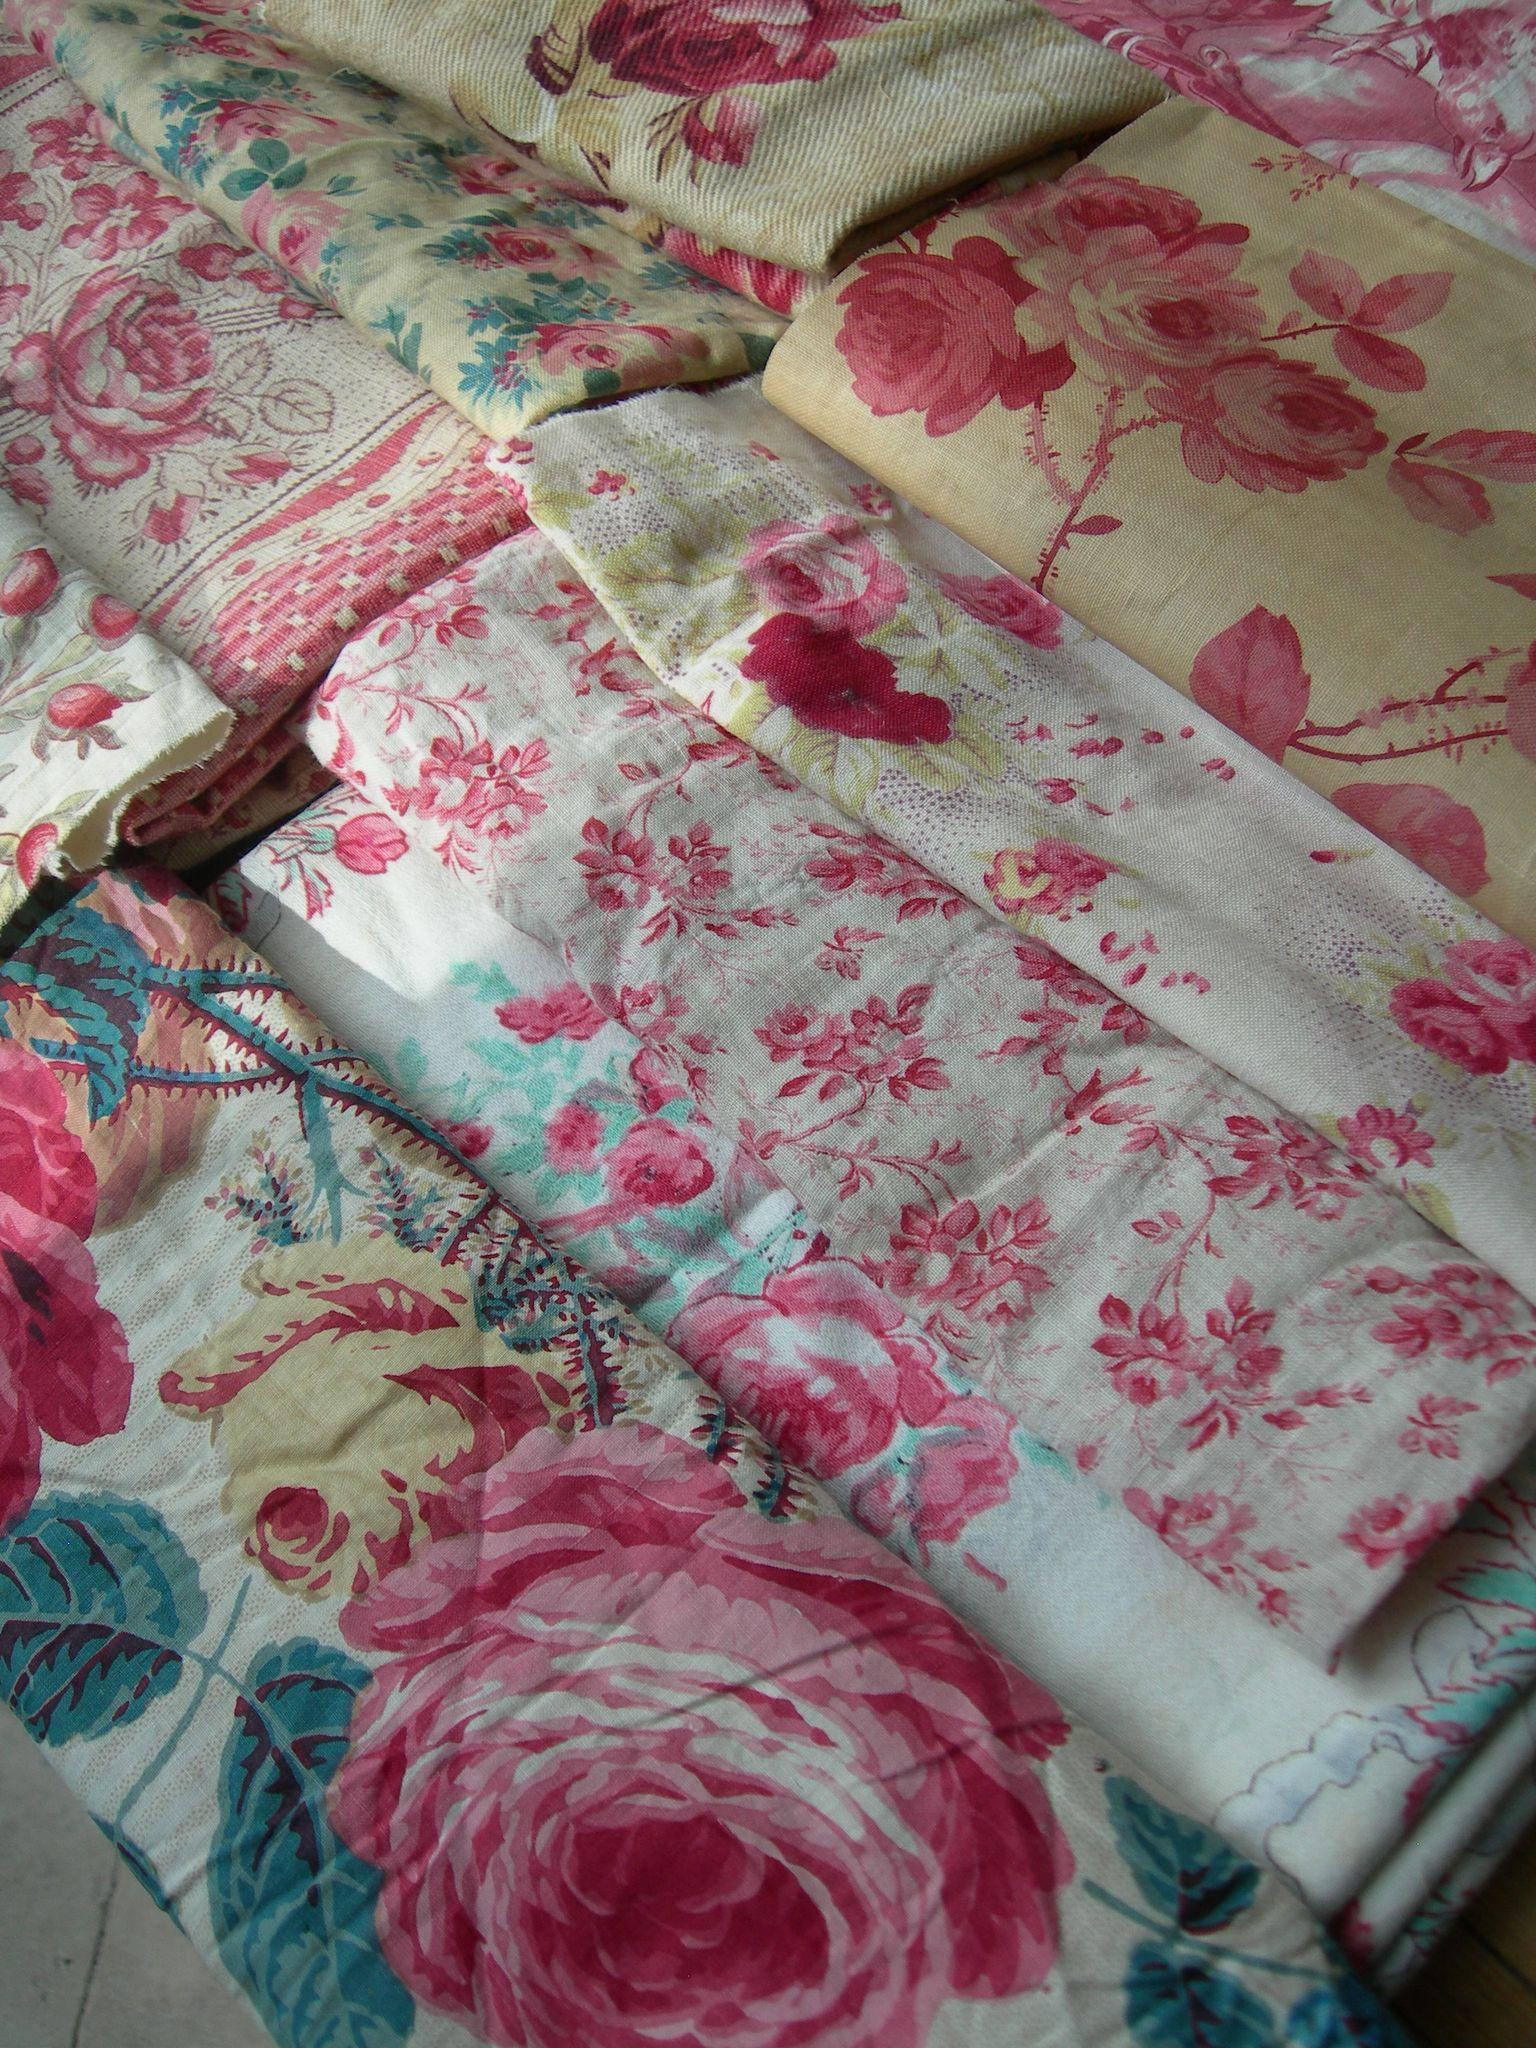 Collection 10 antique French 19th century cabbage roses prints fabric panels - quilts